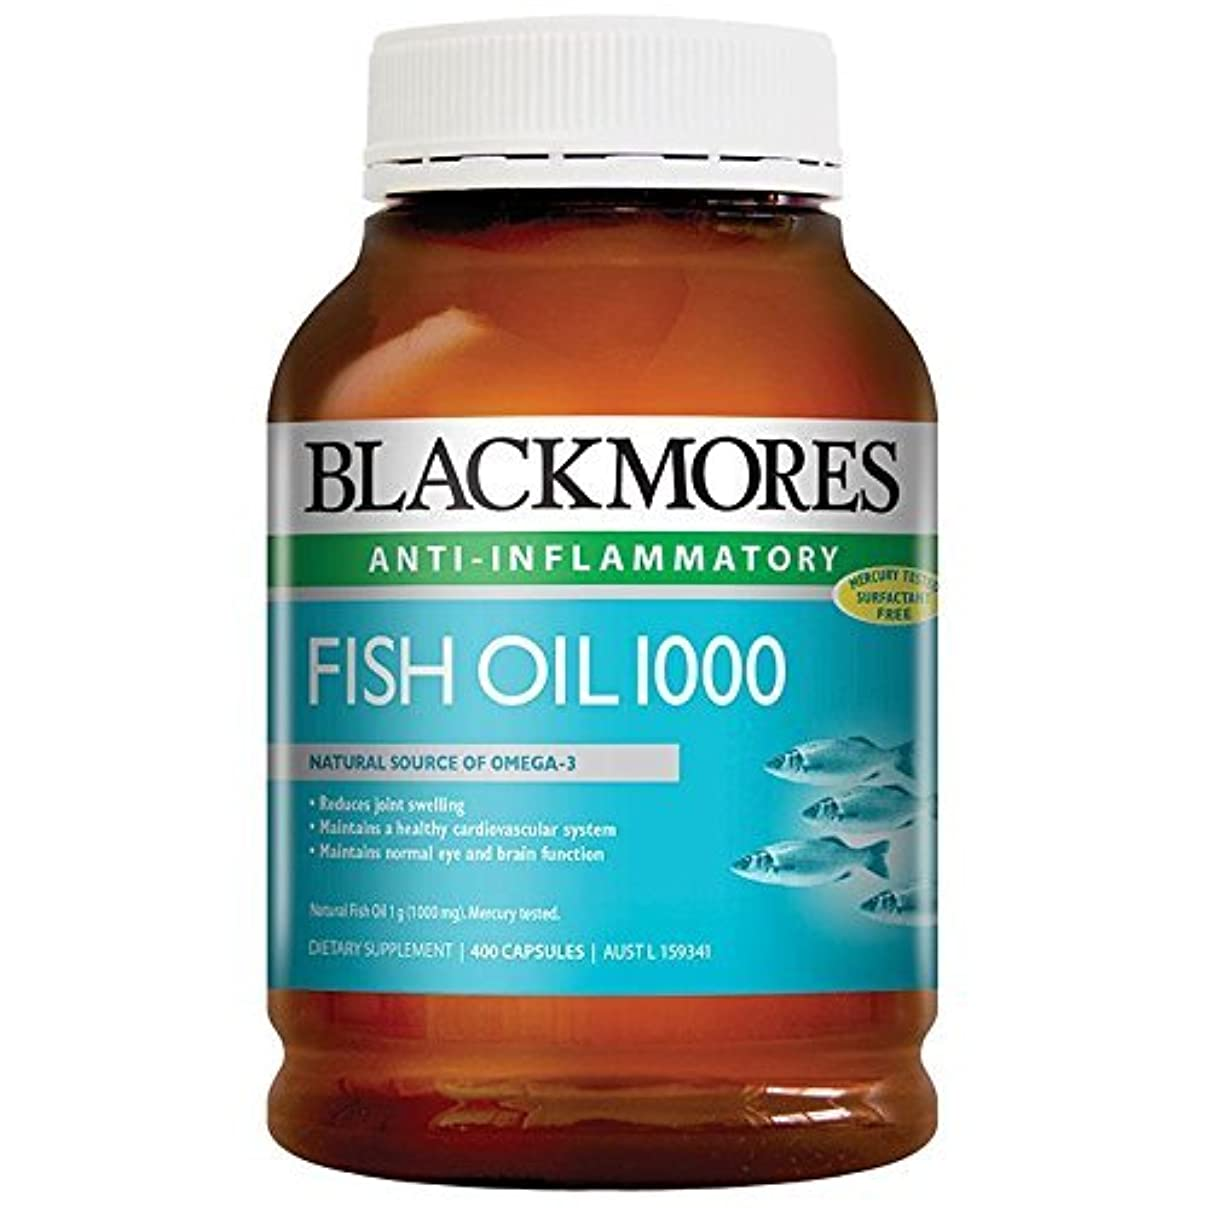 引き潮カバービジュアルBlackmores Fish Oil 400 Caps 1000 Omega3 Dha, EPA Fatty Acids with 1pcs Chinese Knot Gift by Blackmores LTD